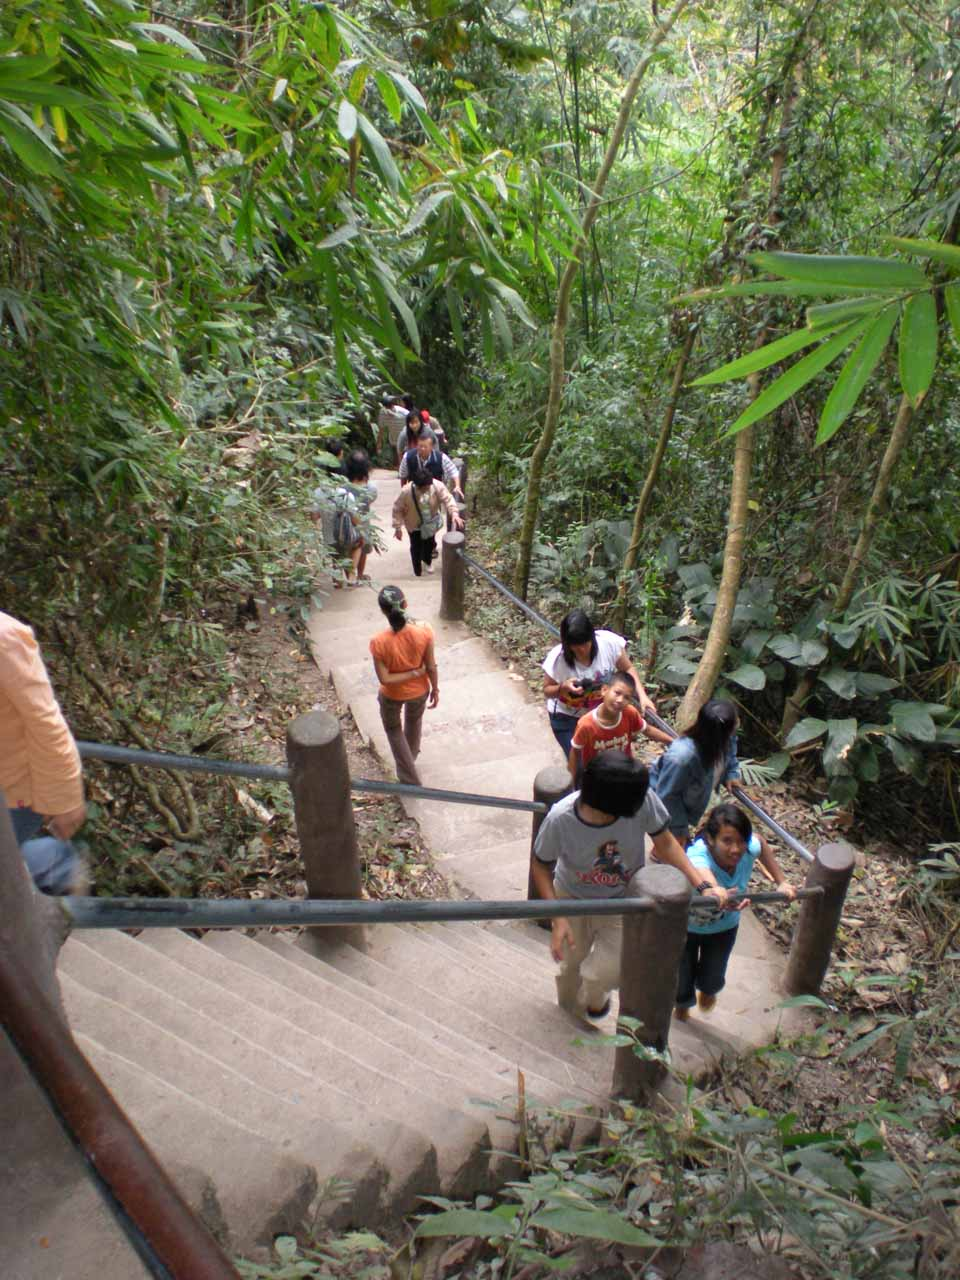 Embarking on the short but crowded trail leading to the base of the Haew Suwat Waterfall